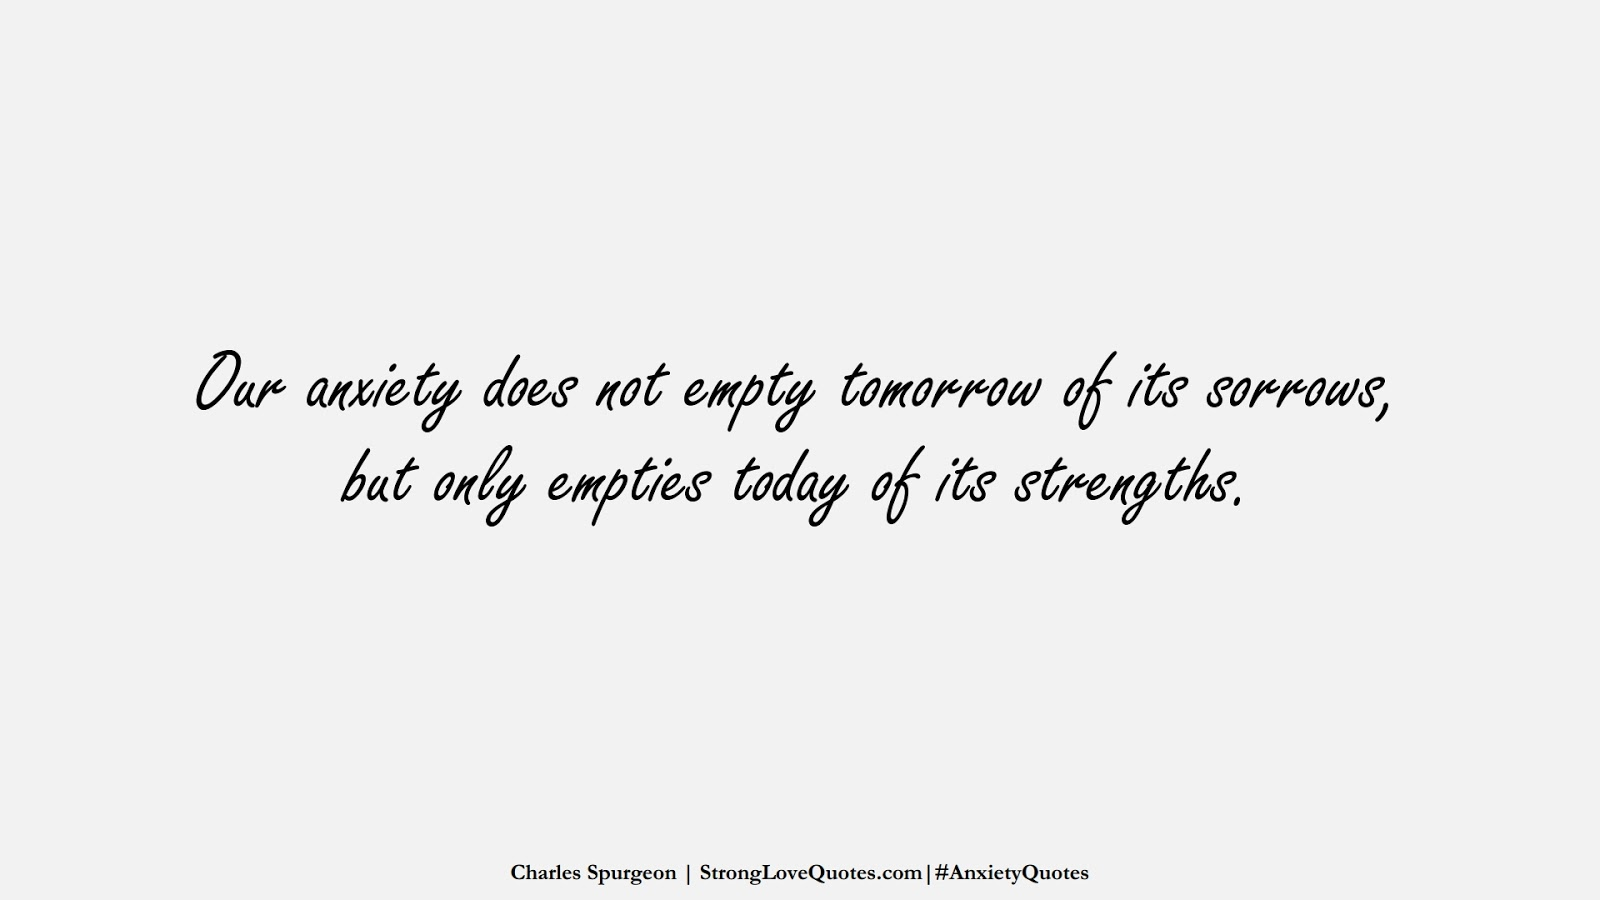 Our anxiety does not empty tomorrow of its sorrows, but only empties today of its strengths. (Charles Spurgeon);  #AnxietyQuotes